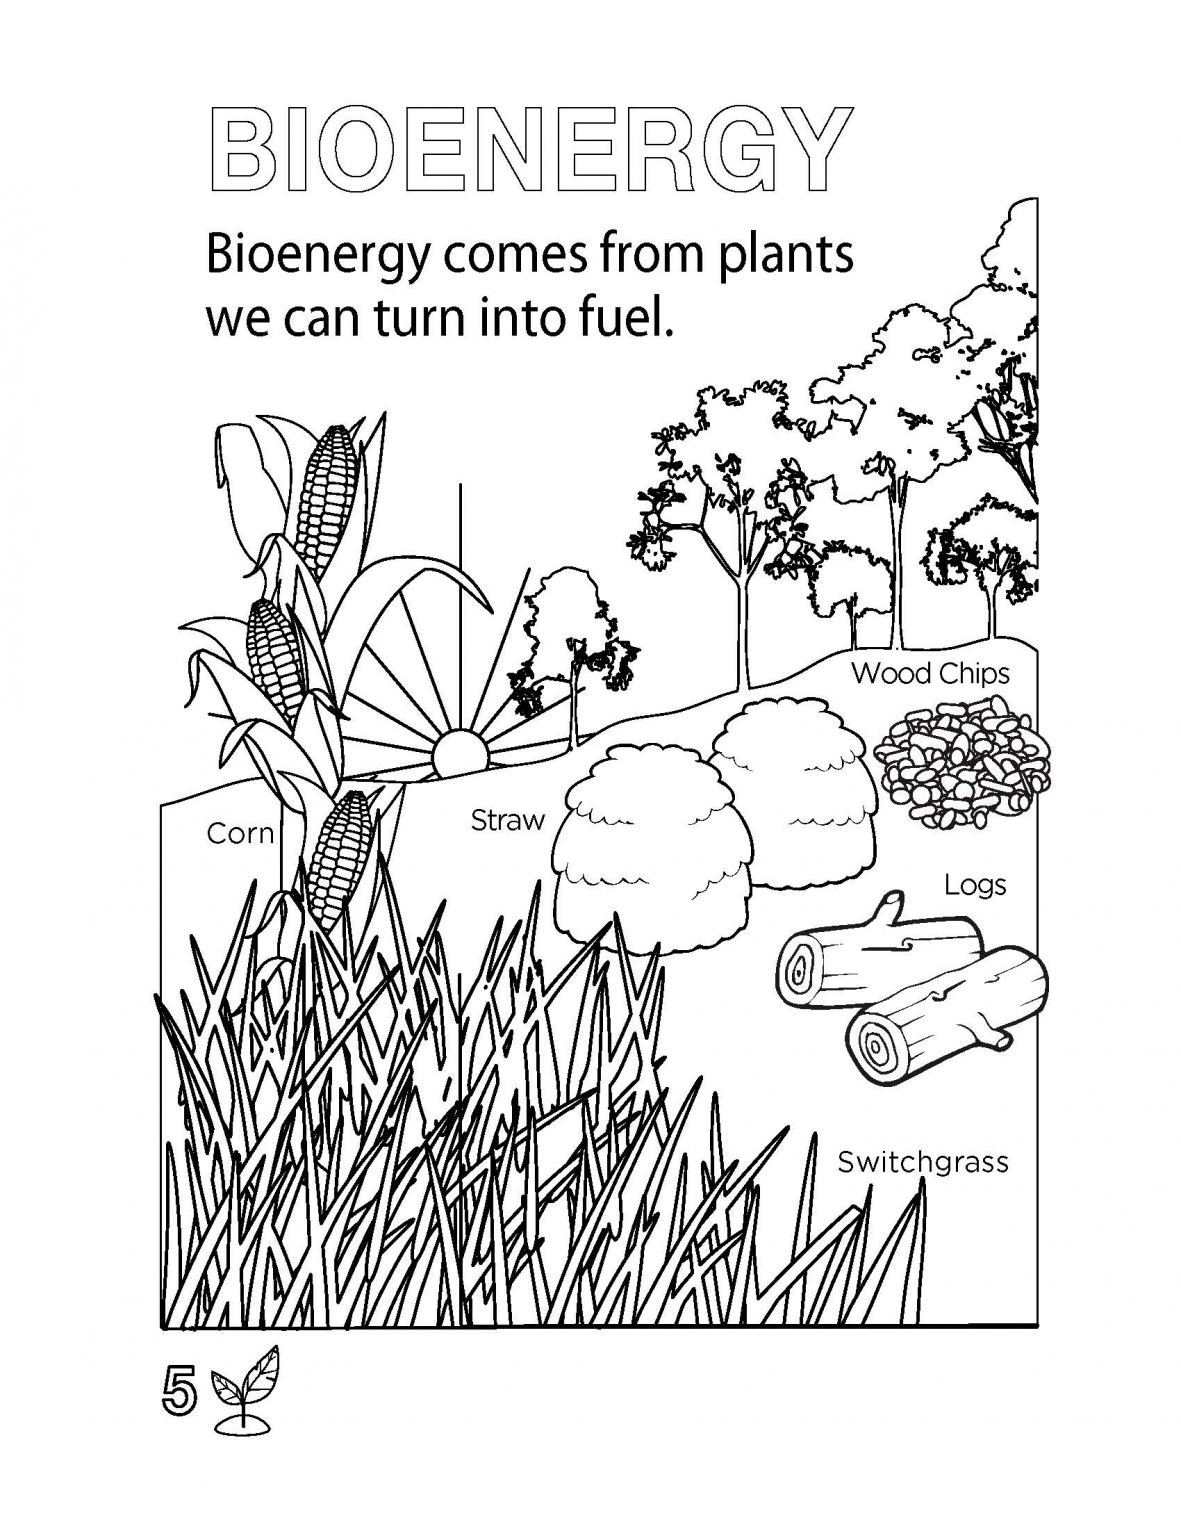 Solar Energy Coloring Pages Printable 3s - Free For kids